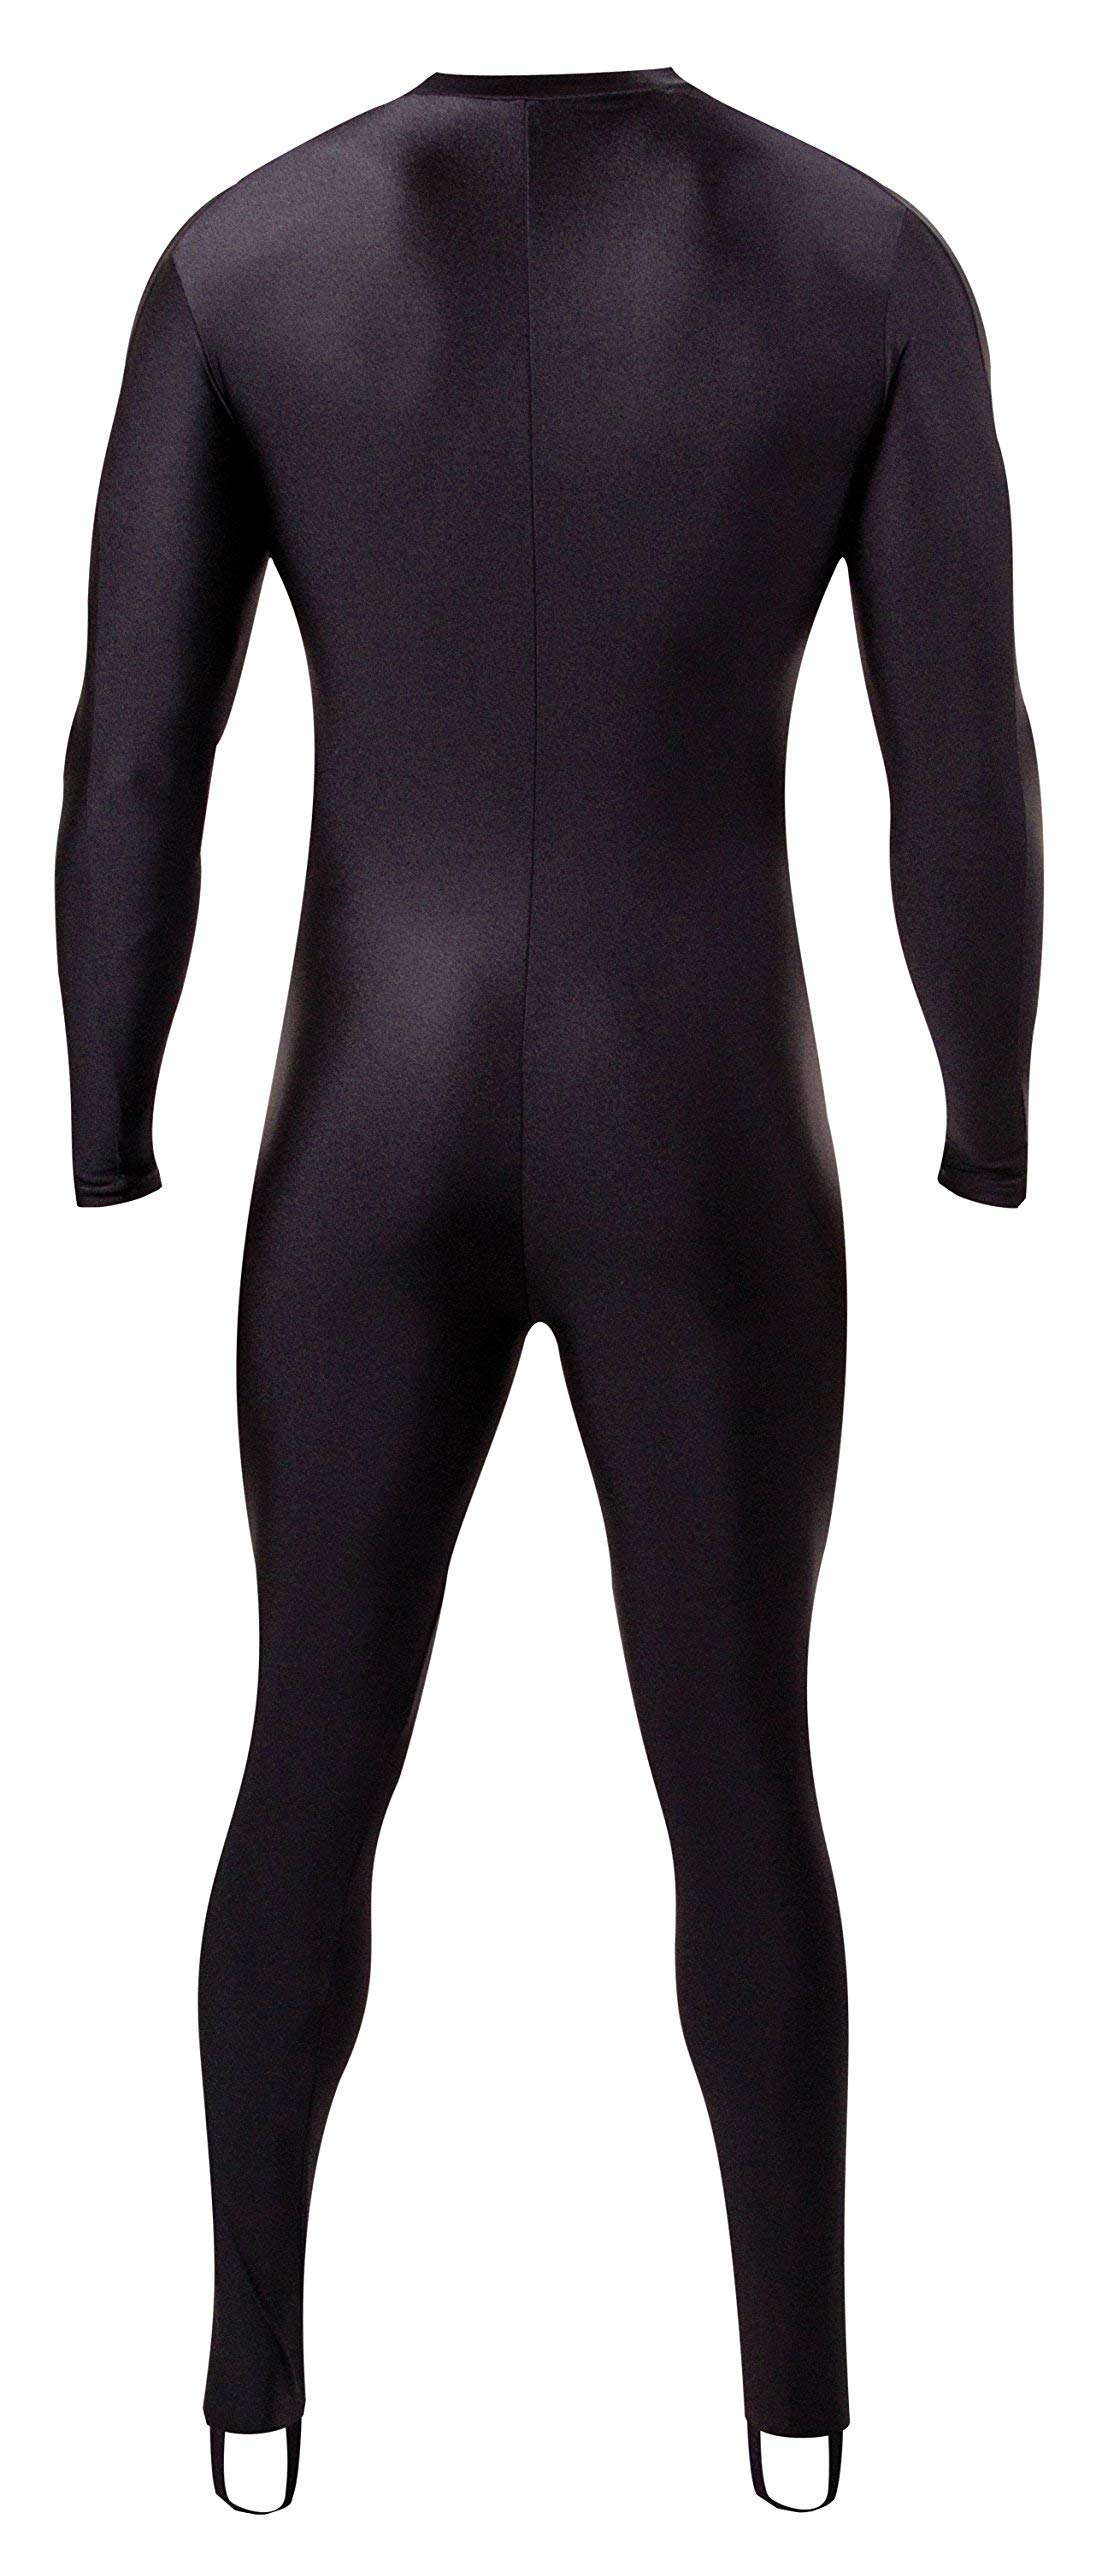 NeoSport Full Body Long Sleeve Lycra Sports Suit for Women and Men - Helps Protect Against UV rays and Skin Irritants - Great for Swimming, Snorkeling, Scuba Diving and All Watersports, Black, XL by Neo-Sport